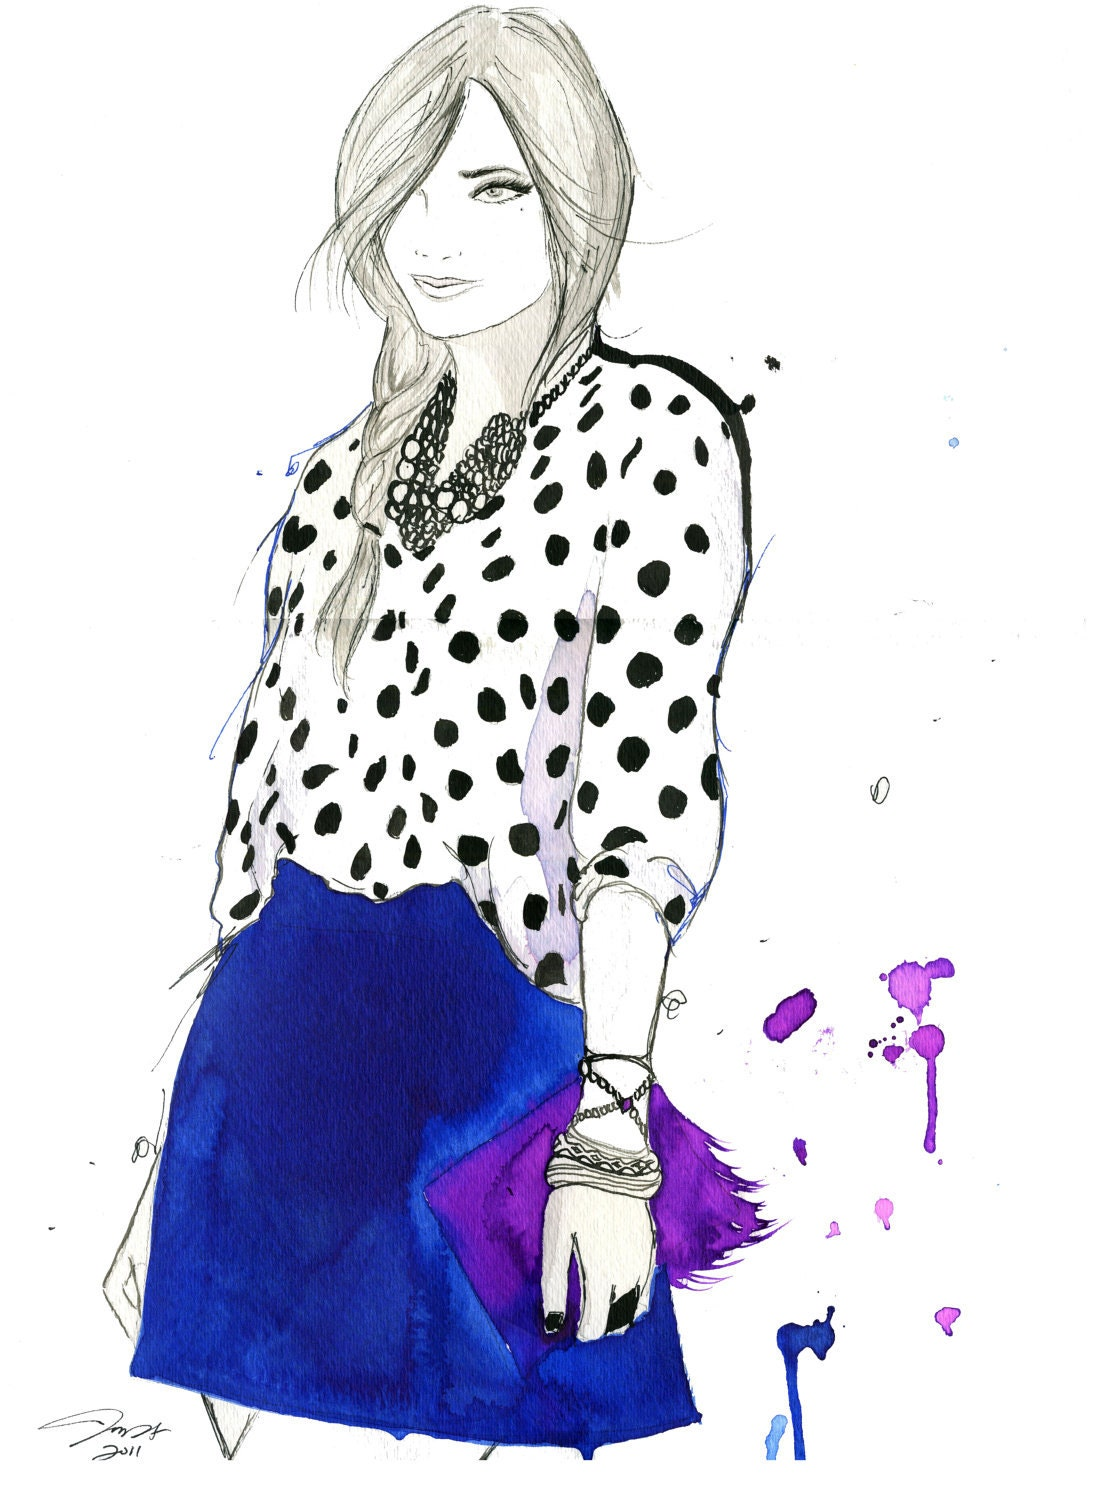 Watercolor and Pen Fashion Illustration by JessicaIllustration